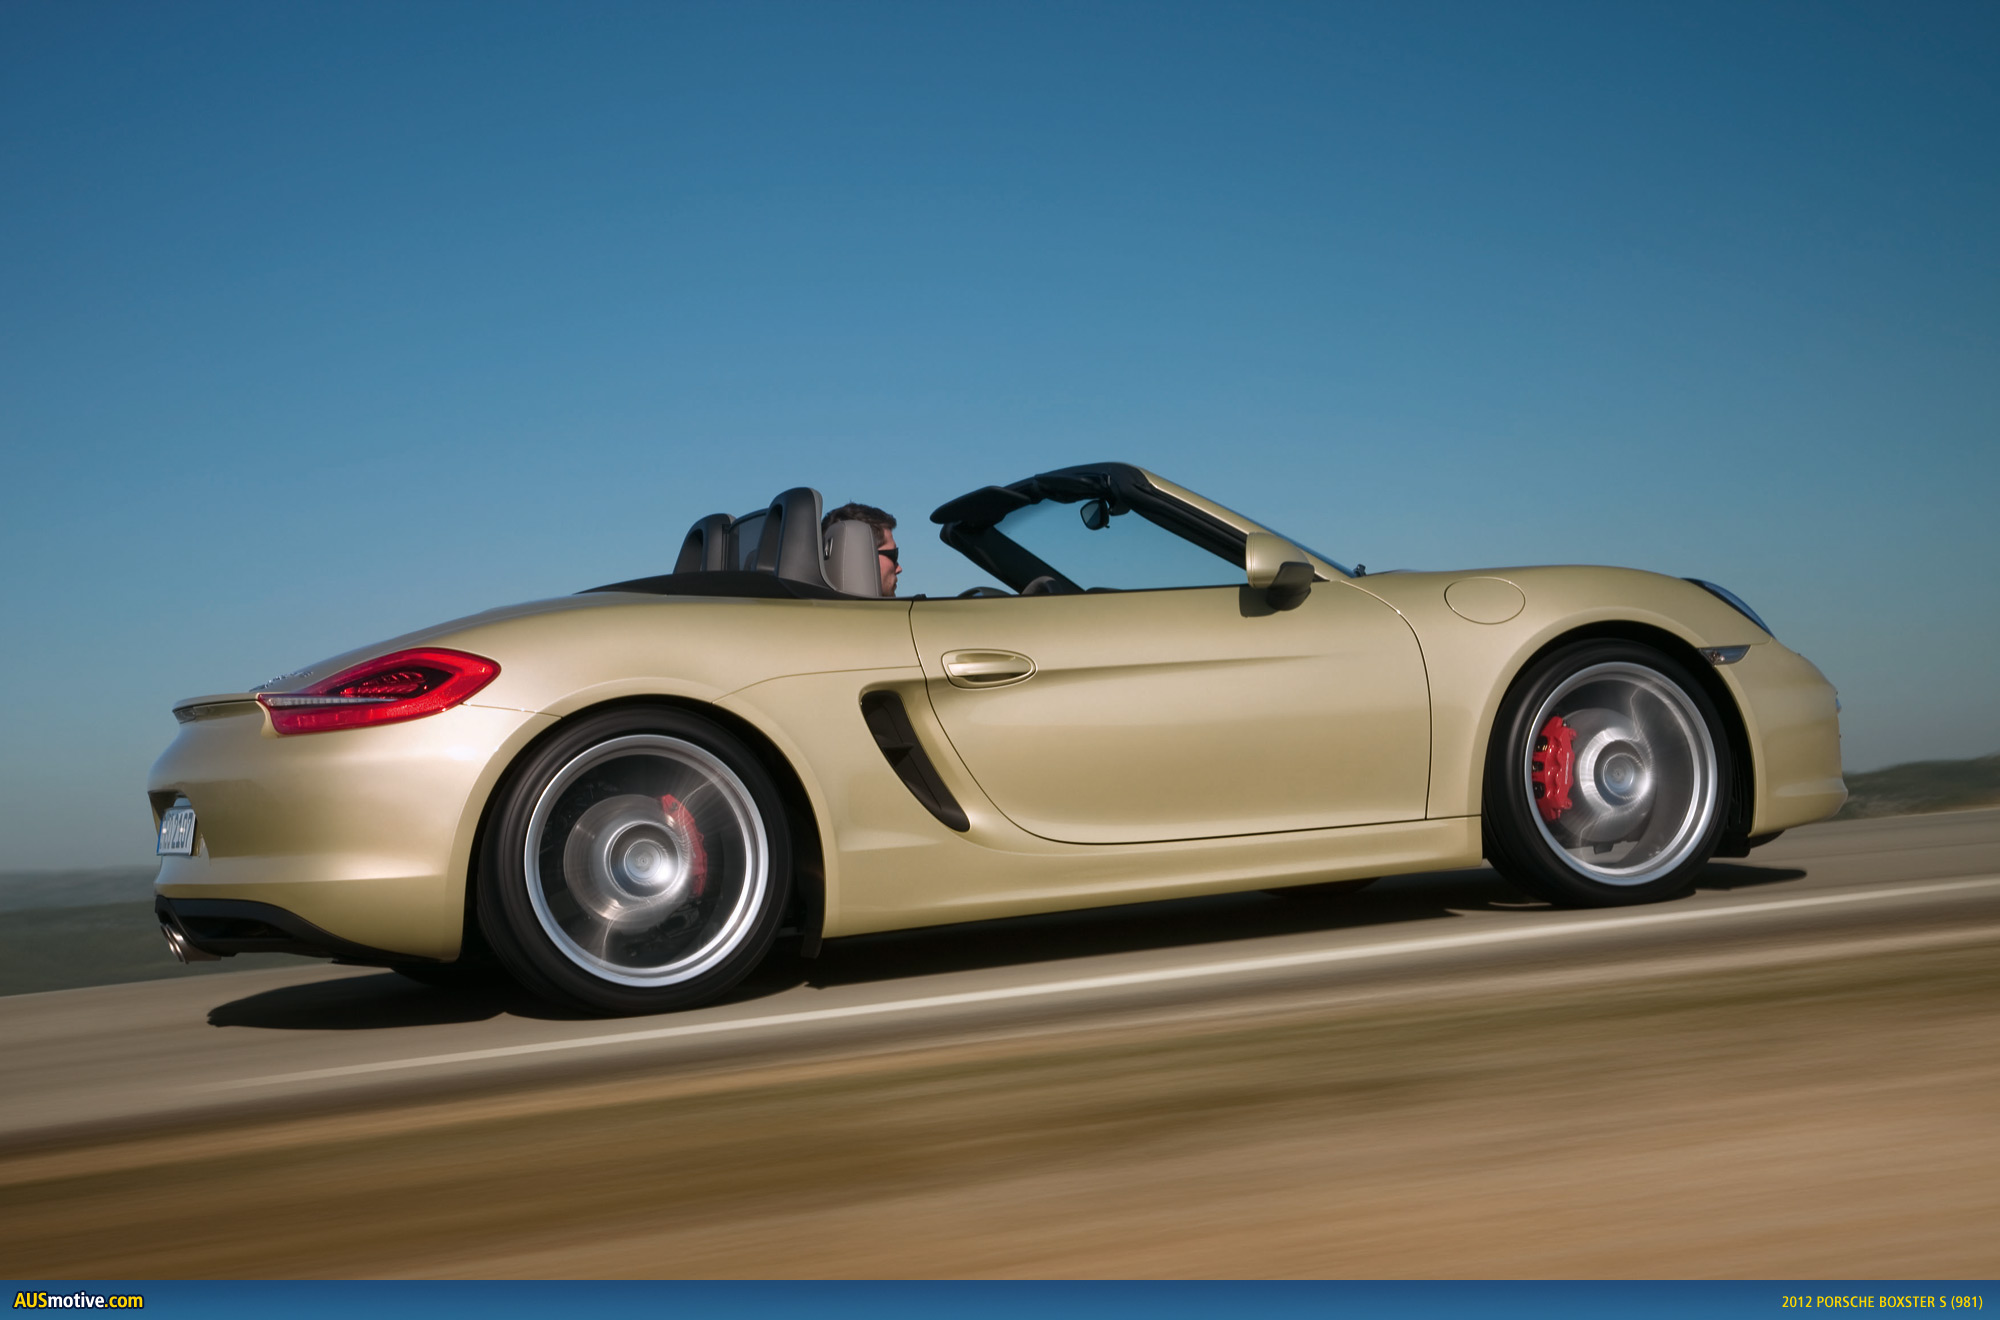 new porsche boxster s laps ring in under 8 mins. Black Bedroom Furniture Sets. Home Design Ideas